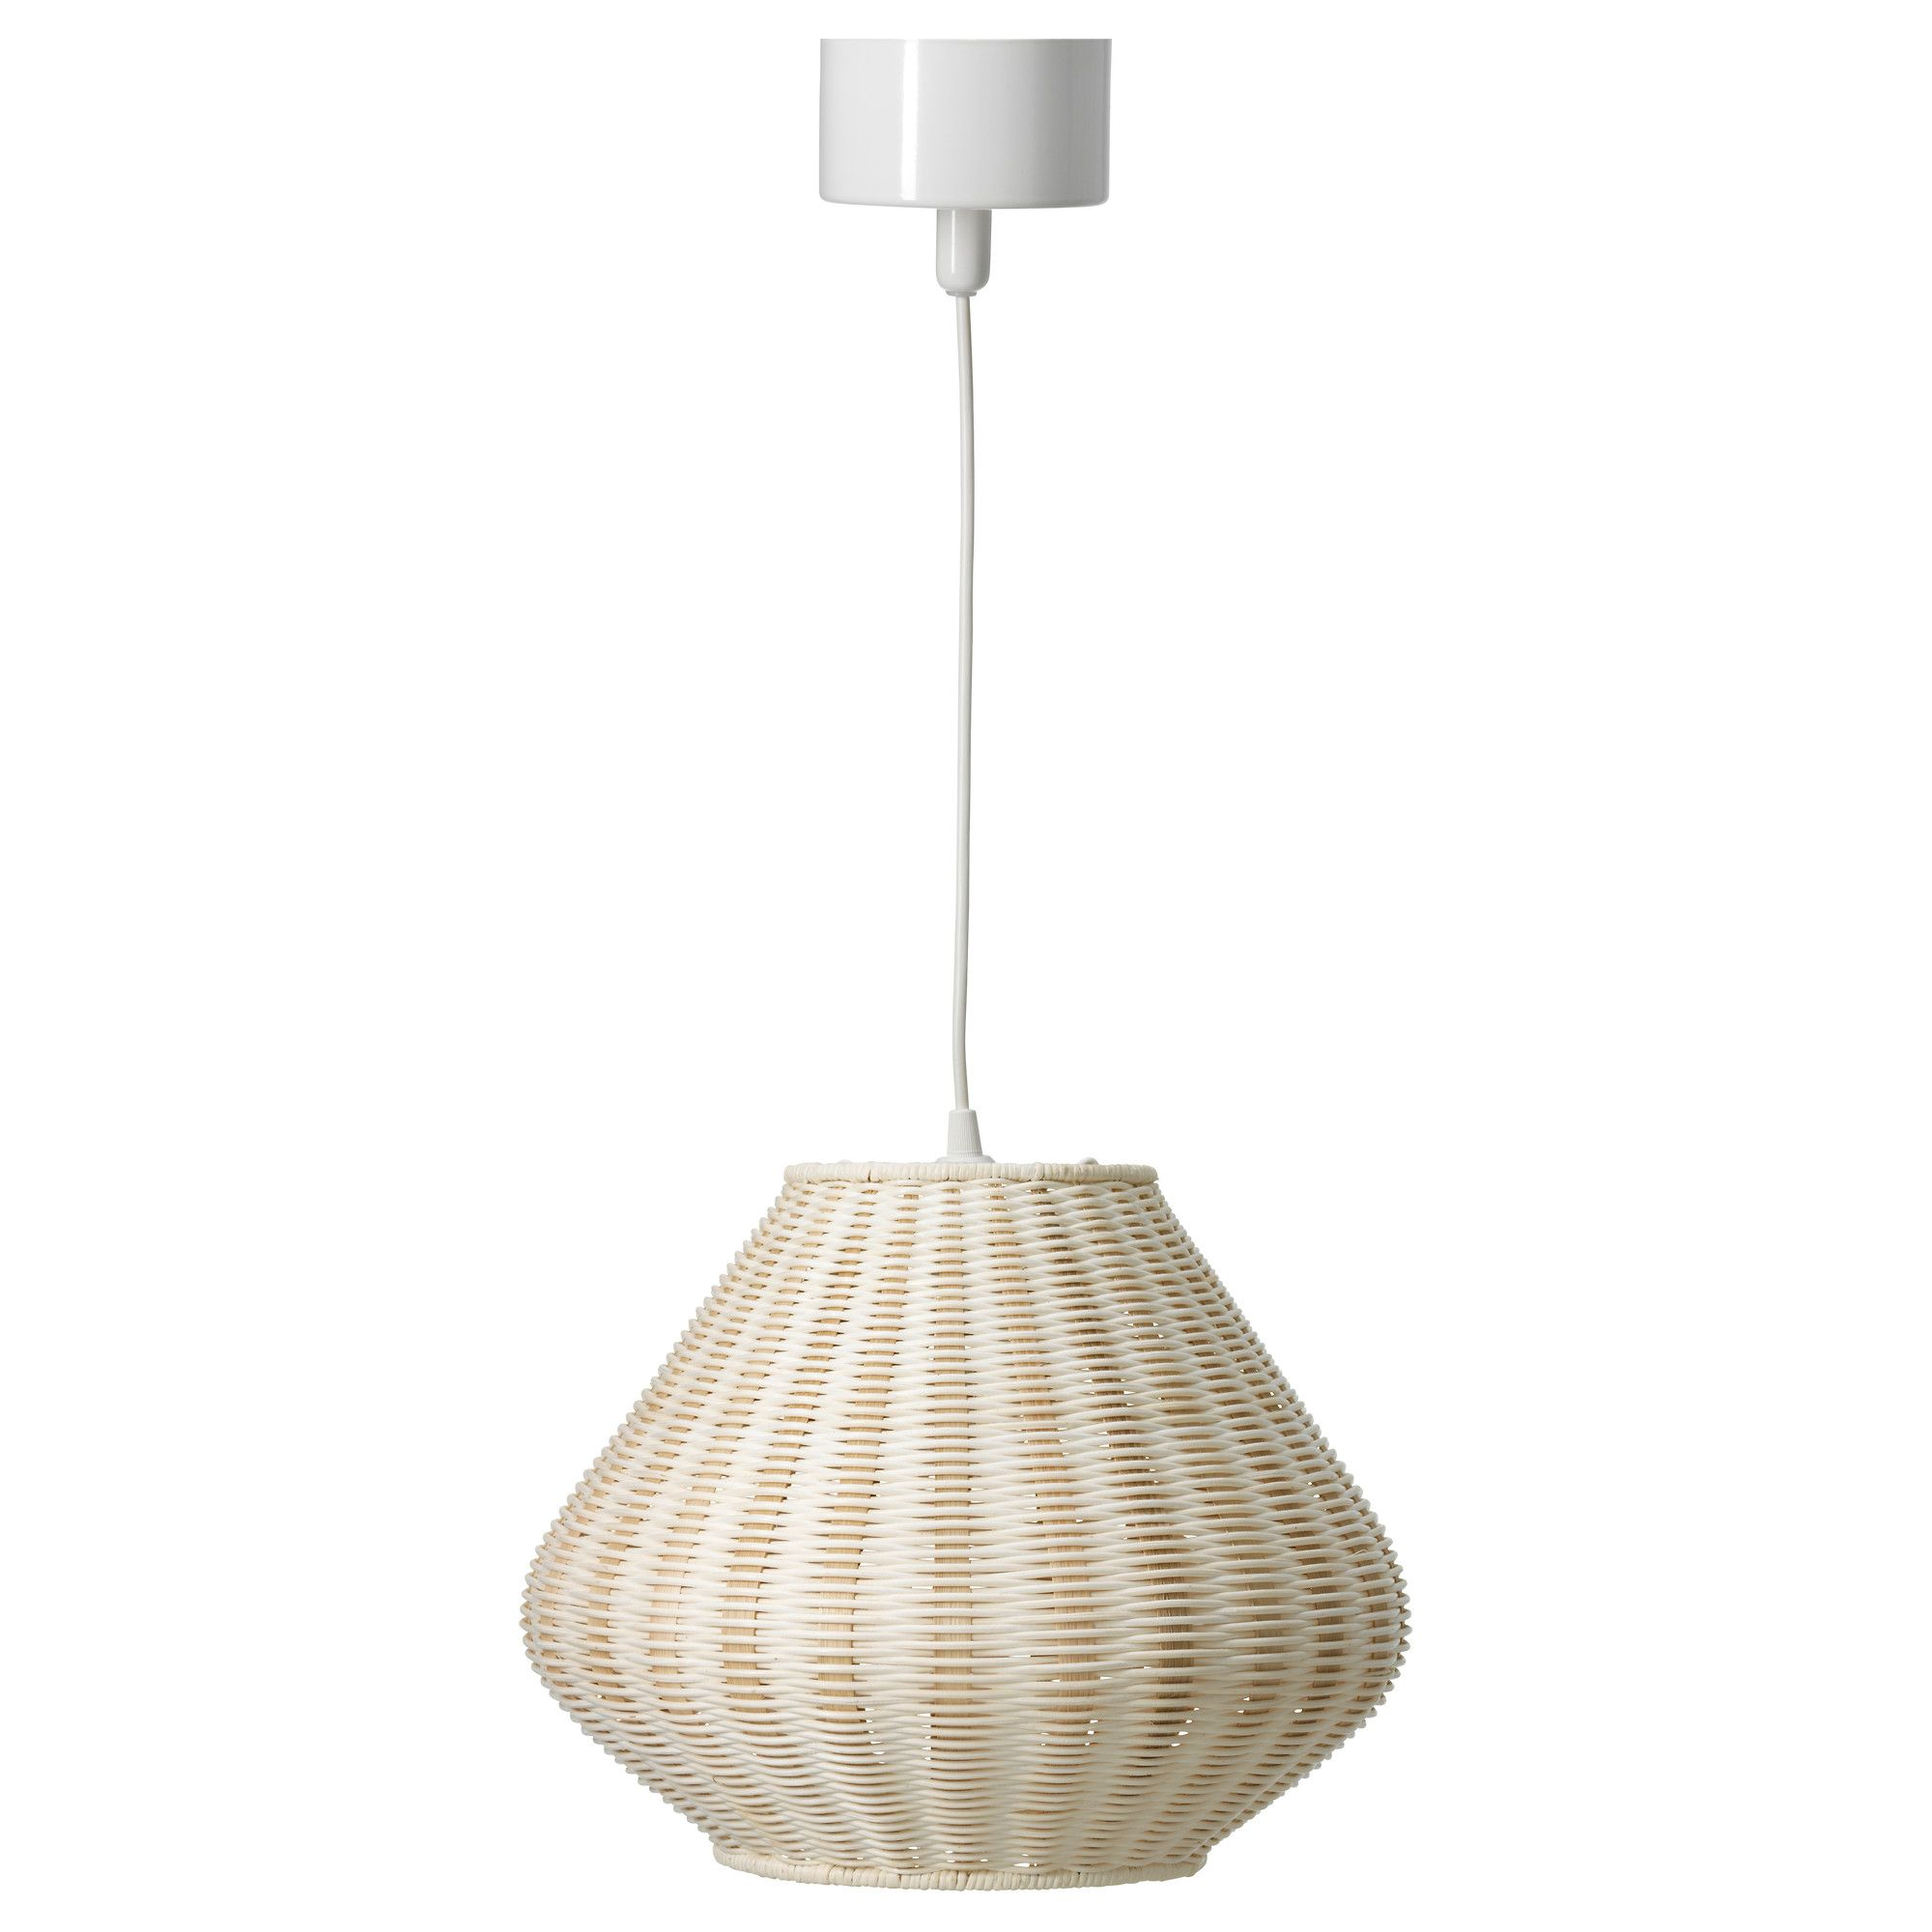 HELG Pendant Lamp   IKEA   I Could See This As A Great Swedish Look In